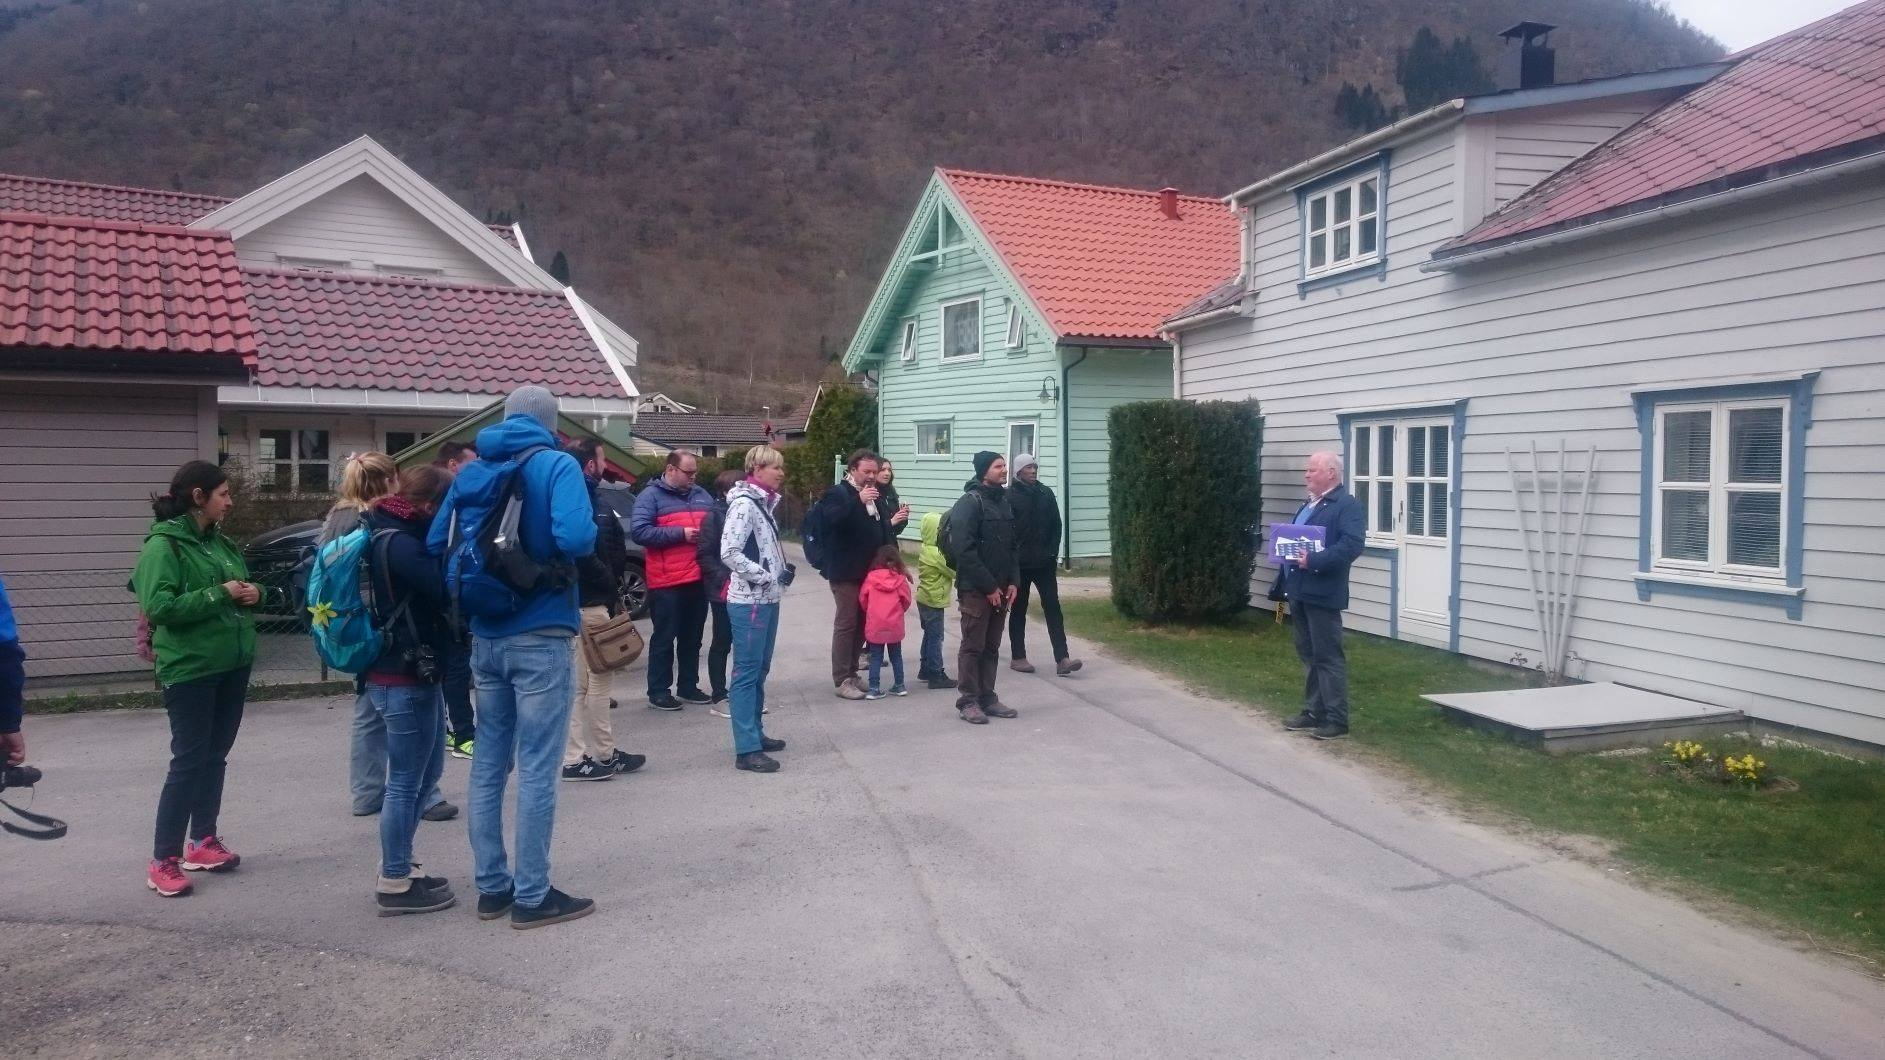 Guiding at Vikøyri